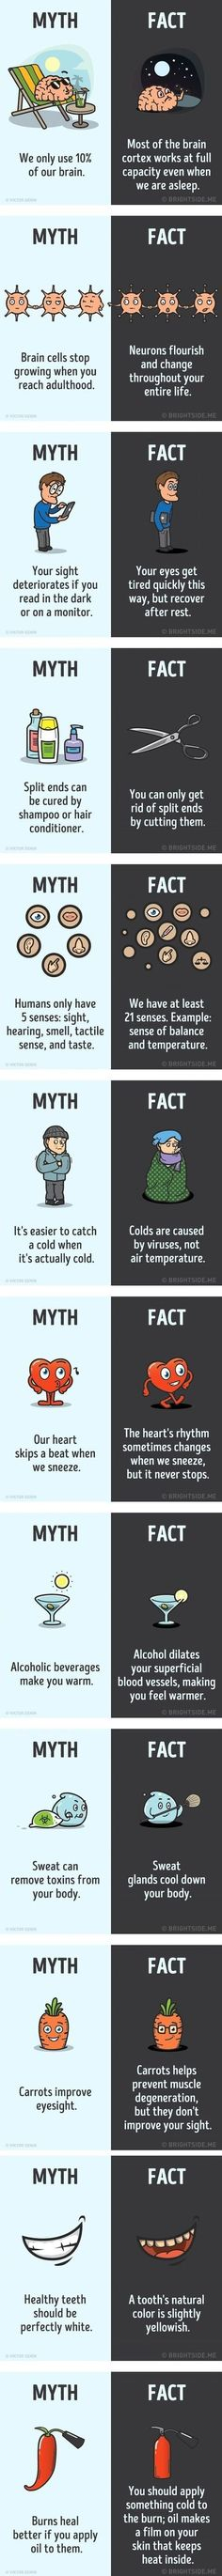 Science myths and facts about the human body with illustrations. But some or too simplified or there is truth in the mythe (vitamine D from Carrots to create rhodopsine) Simple Life Hacks, Useful Life Hacks, The More You Know, Did You Know, Books And Tea, 1000 Lifehacks, Science Facts, Science Quotes, Physics Facts